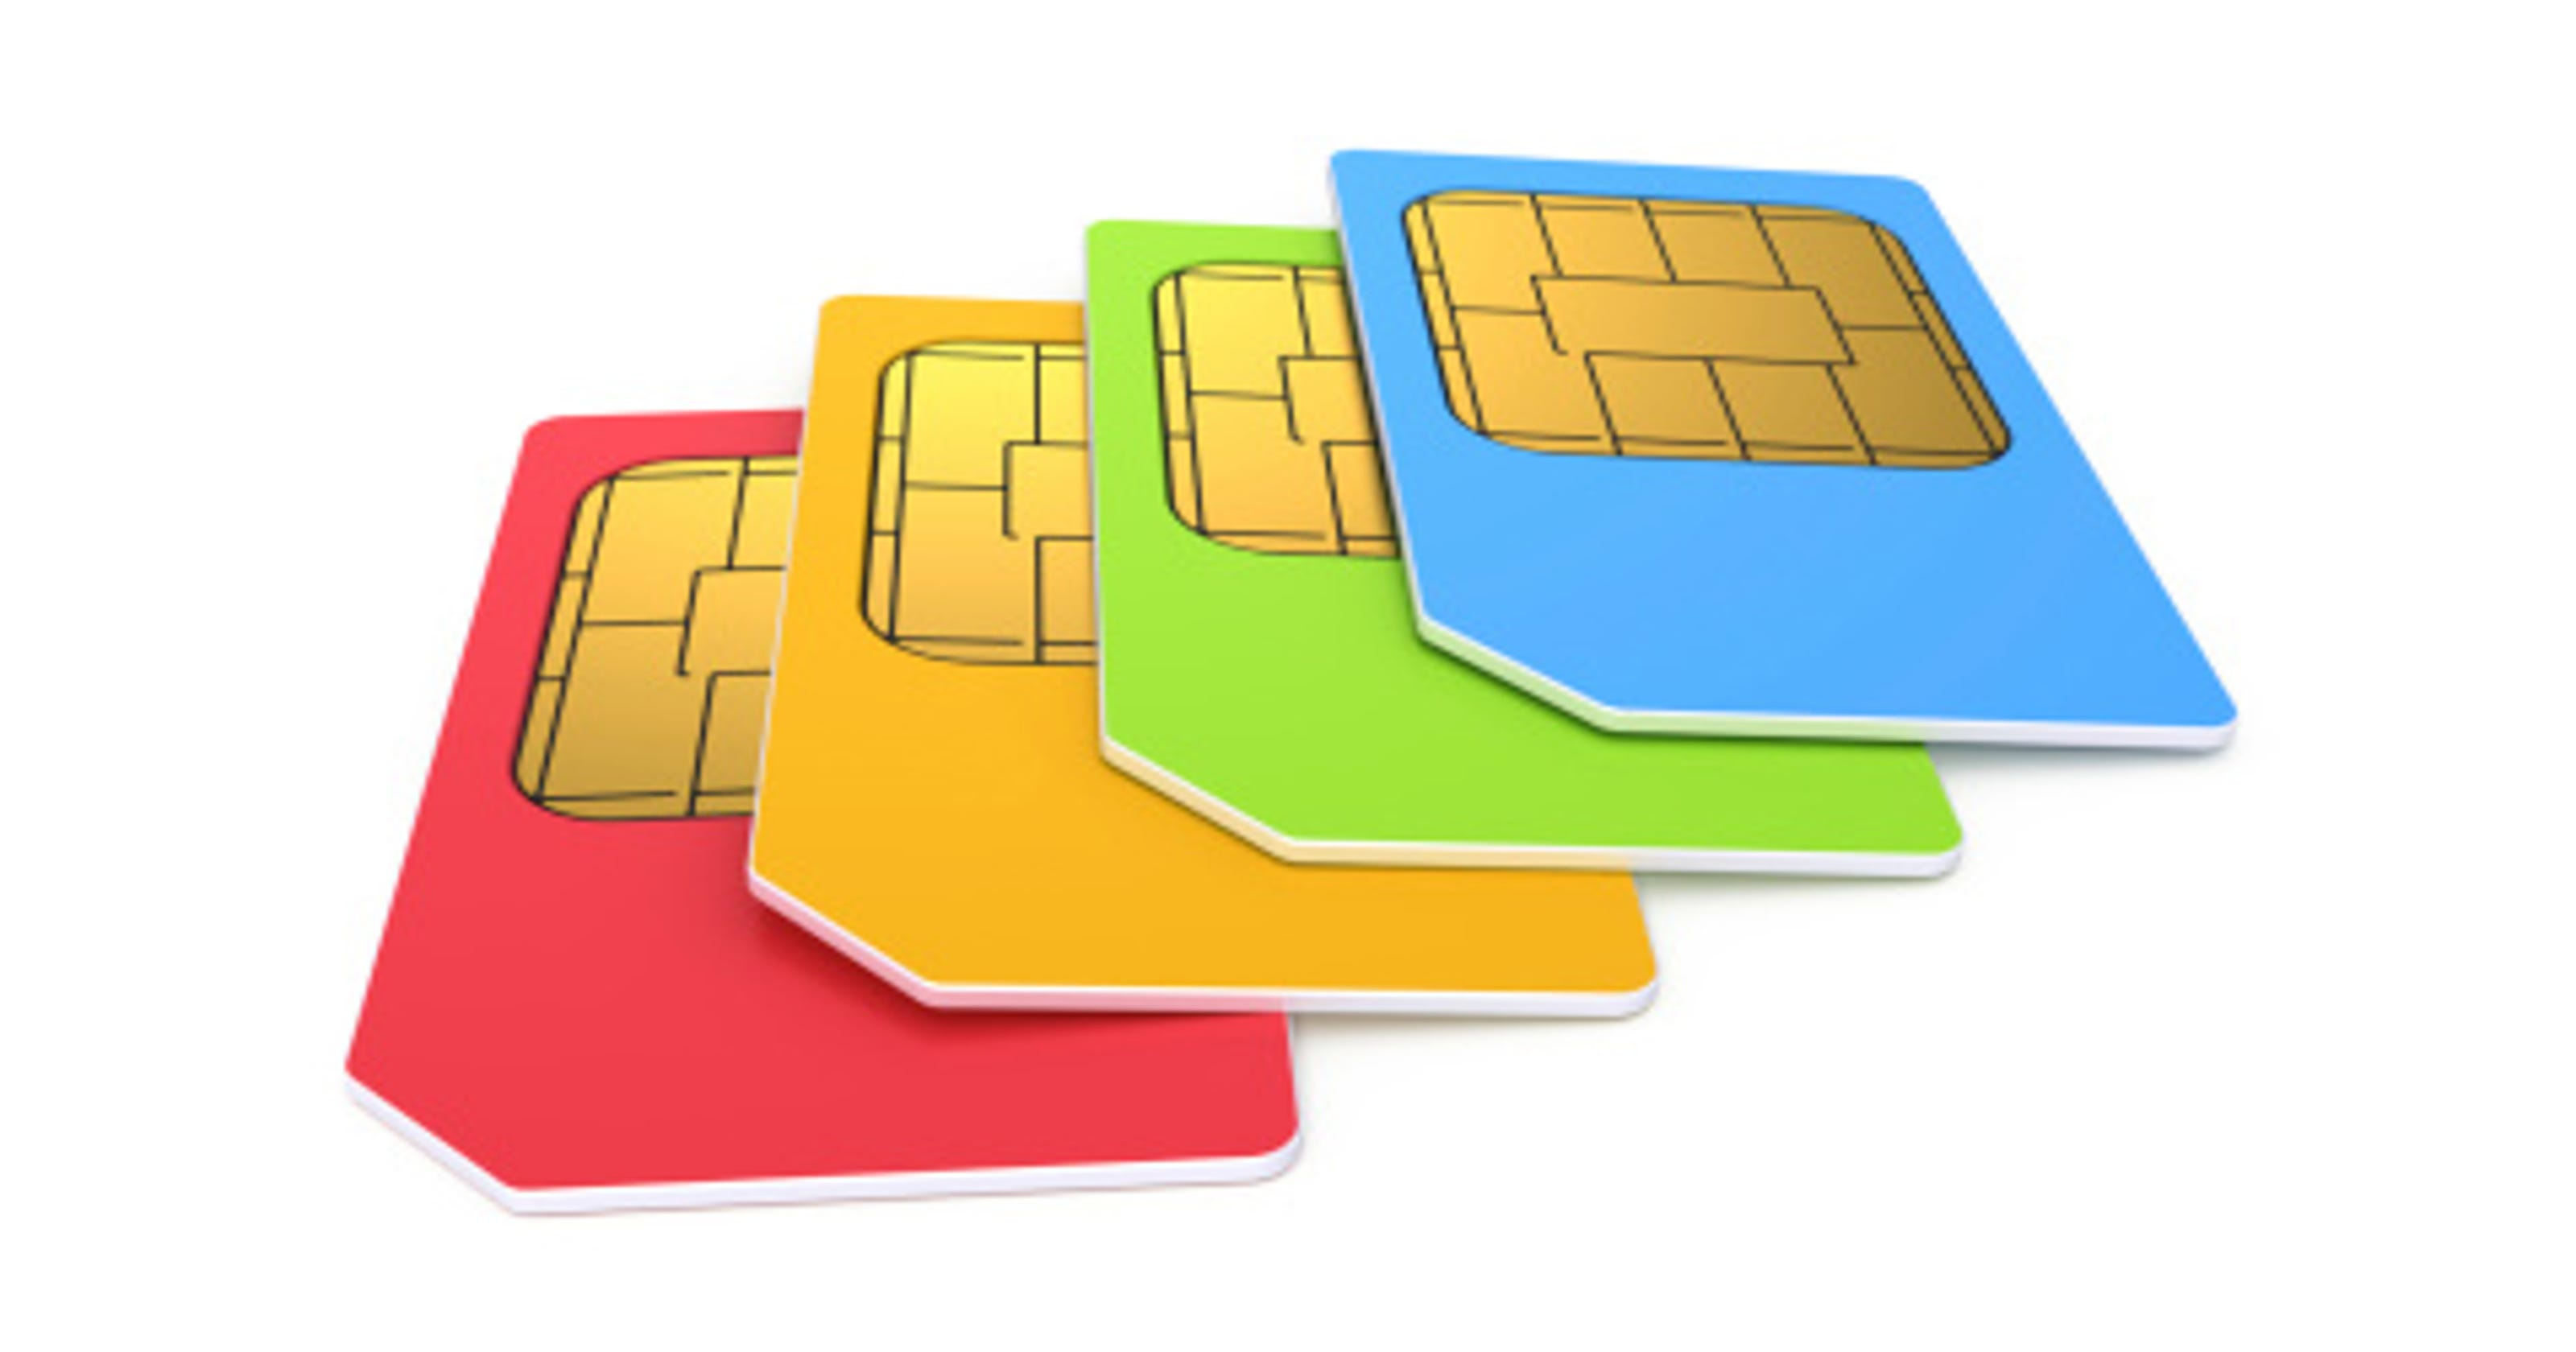 It's not so SIM-ple to trim a SIM card, but here's how